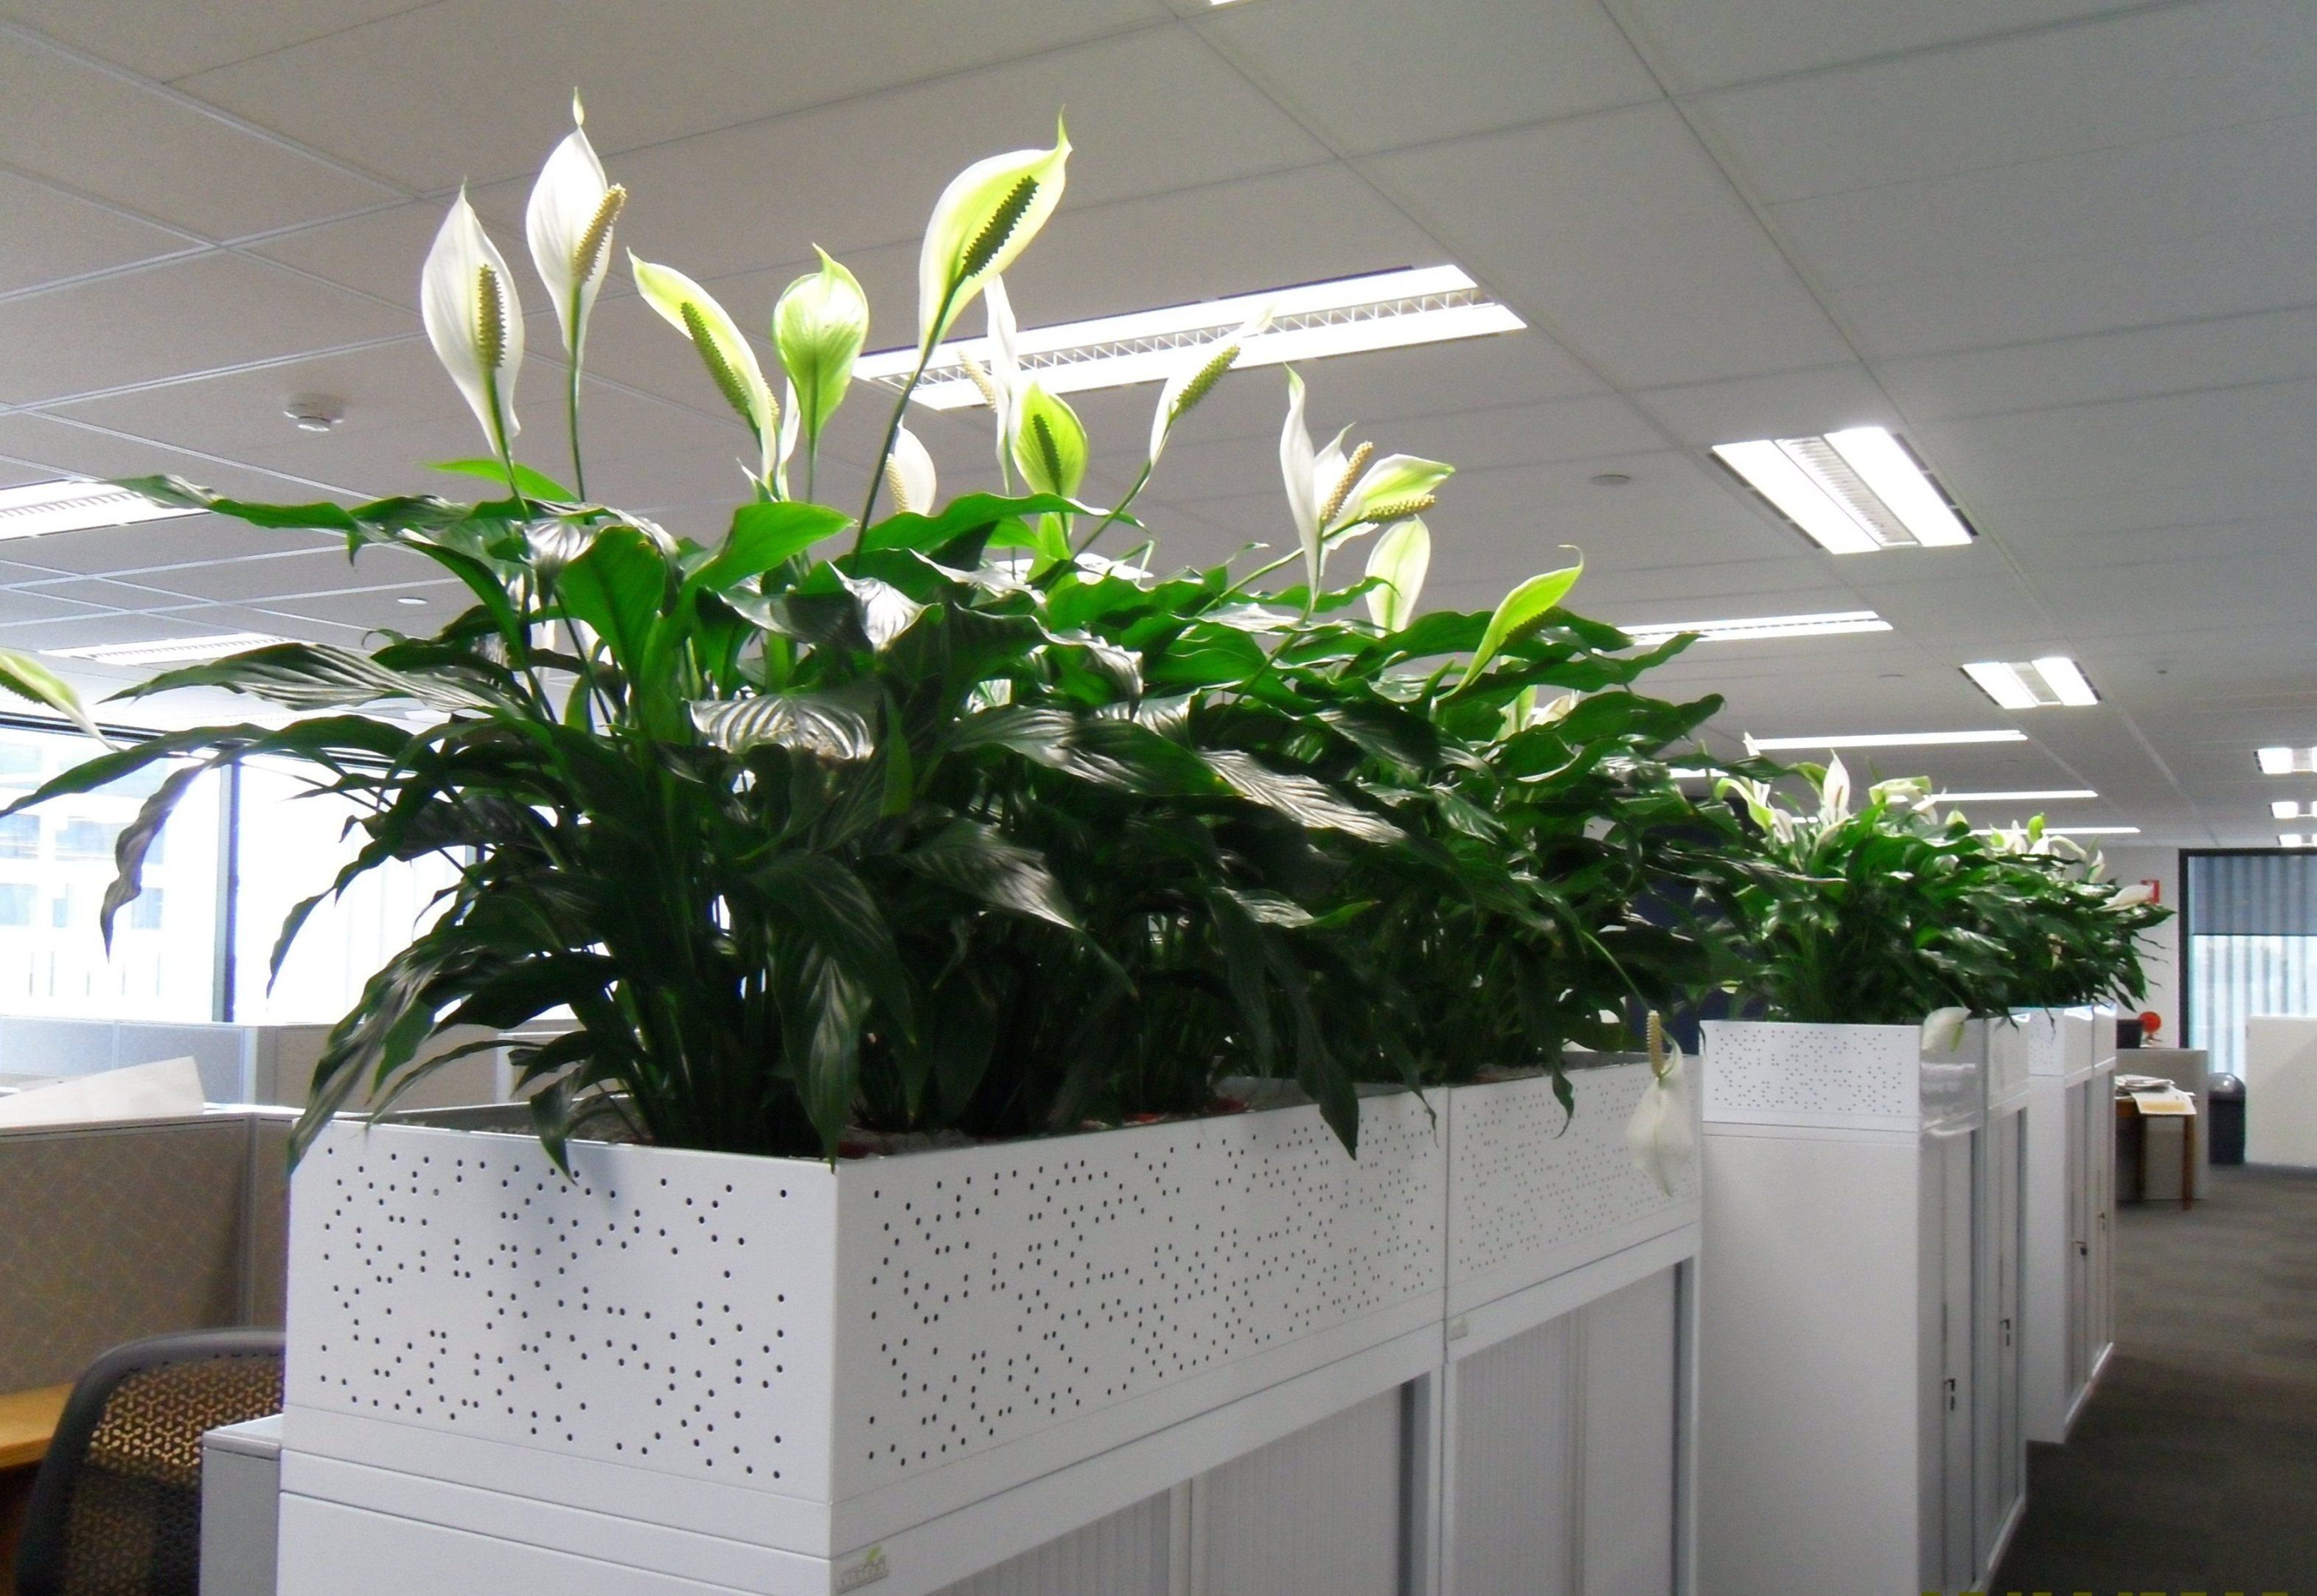 office planter boxes. keeping plants in the office can help clean air and even improve your health planter boxes 0